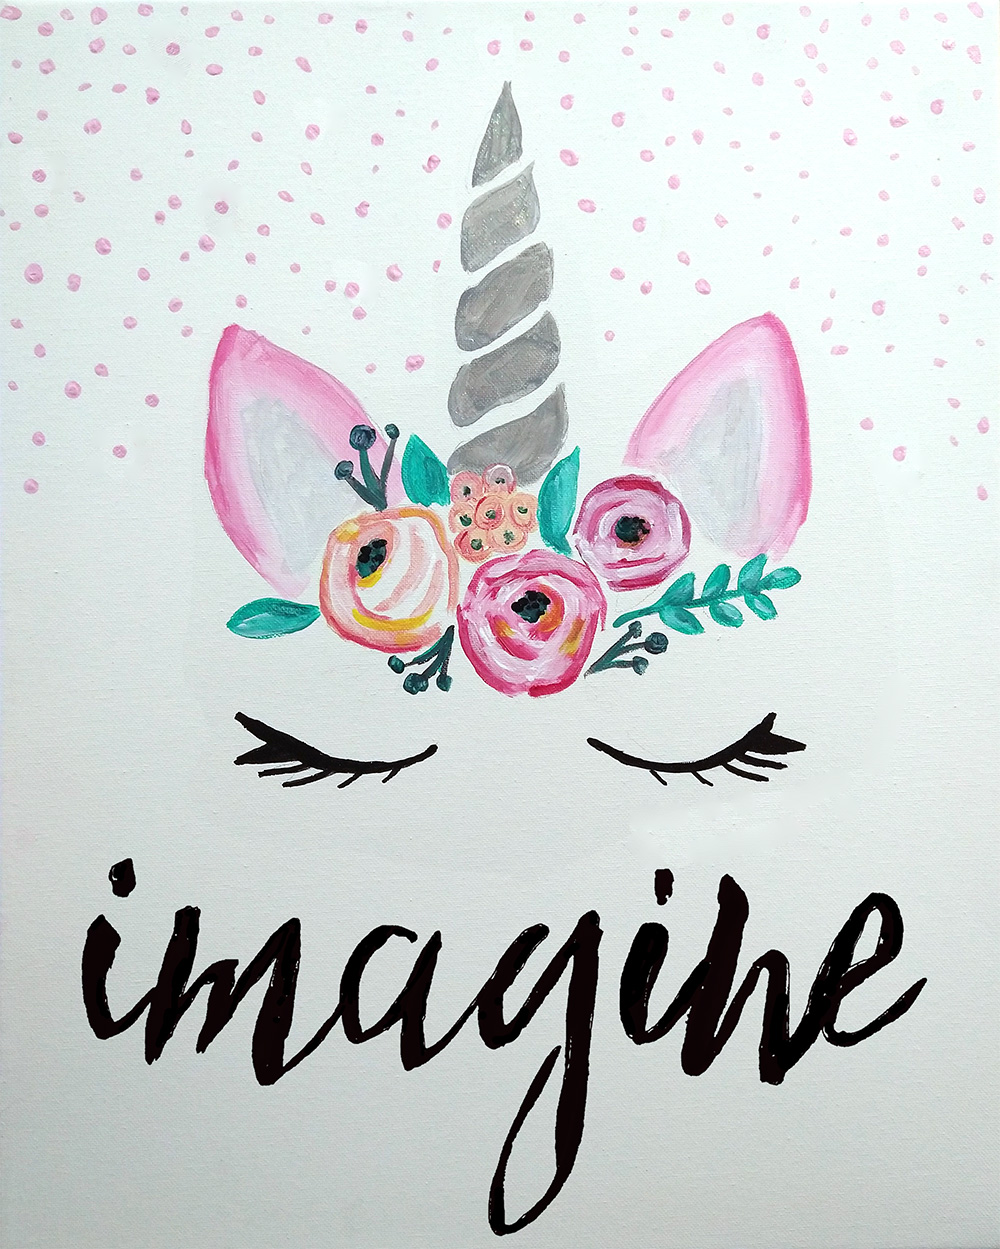 A Imagine Unicorn Lashes experience project by Yaymaker